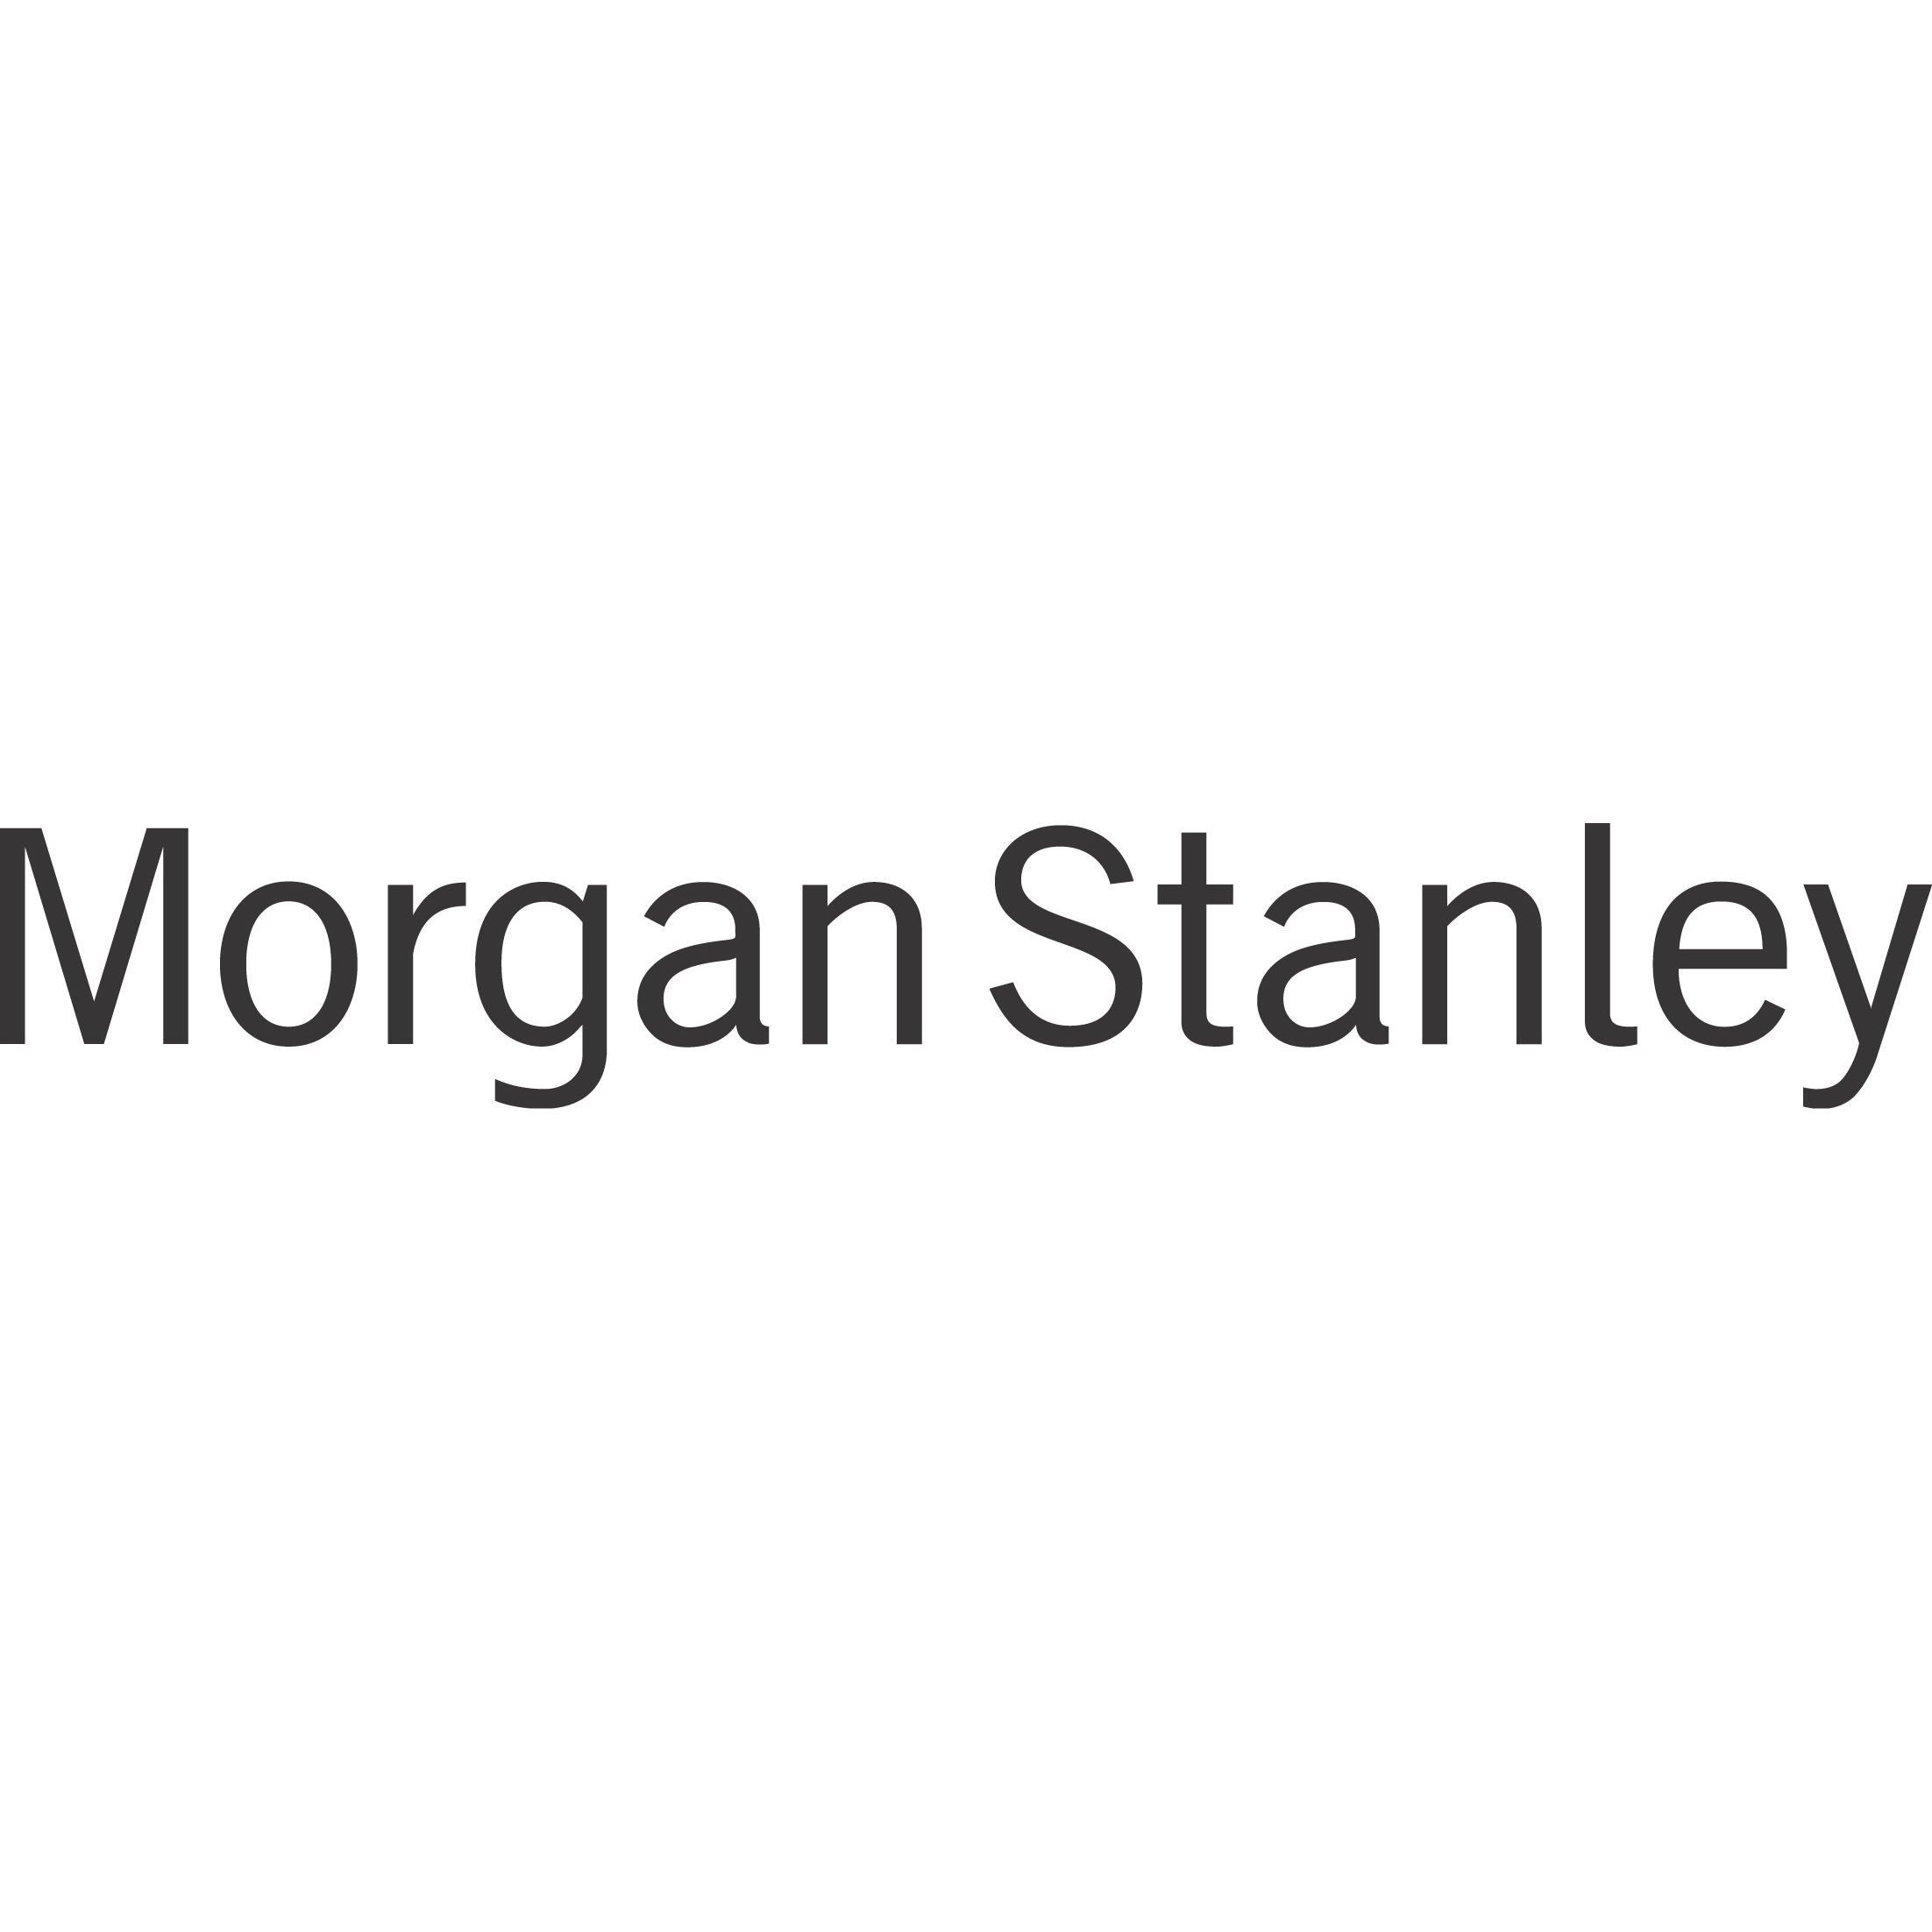 David Lee Allen - Morgan Stanley